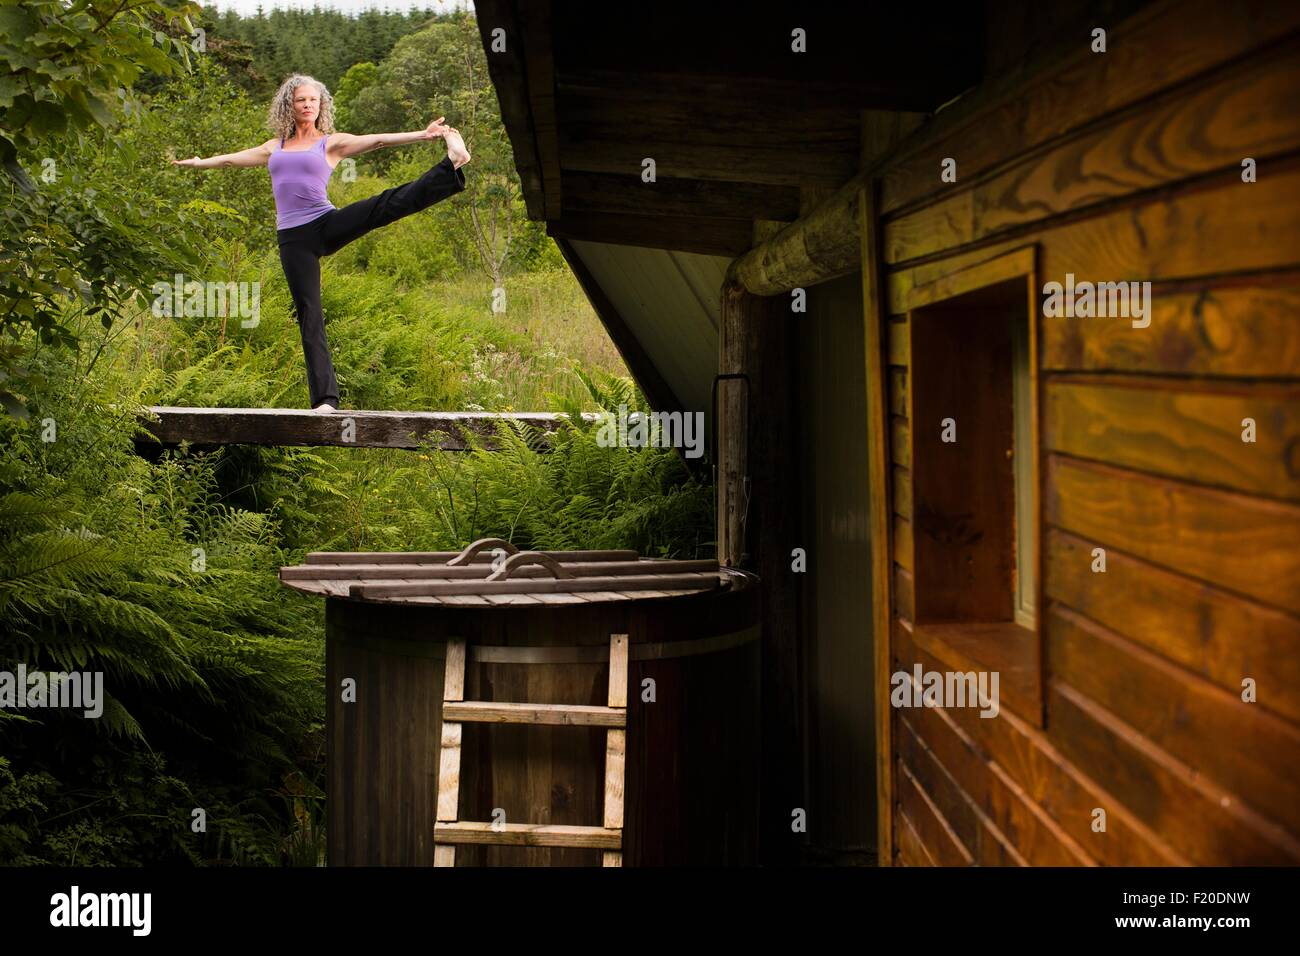 Mature woman practicing yoga pose on footbridge at eco lodge - Stock Image